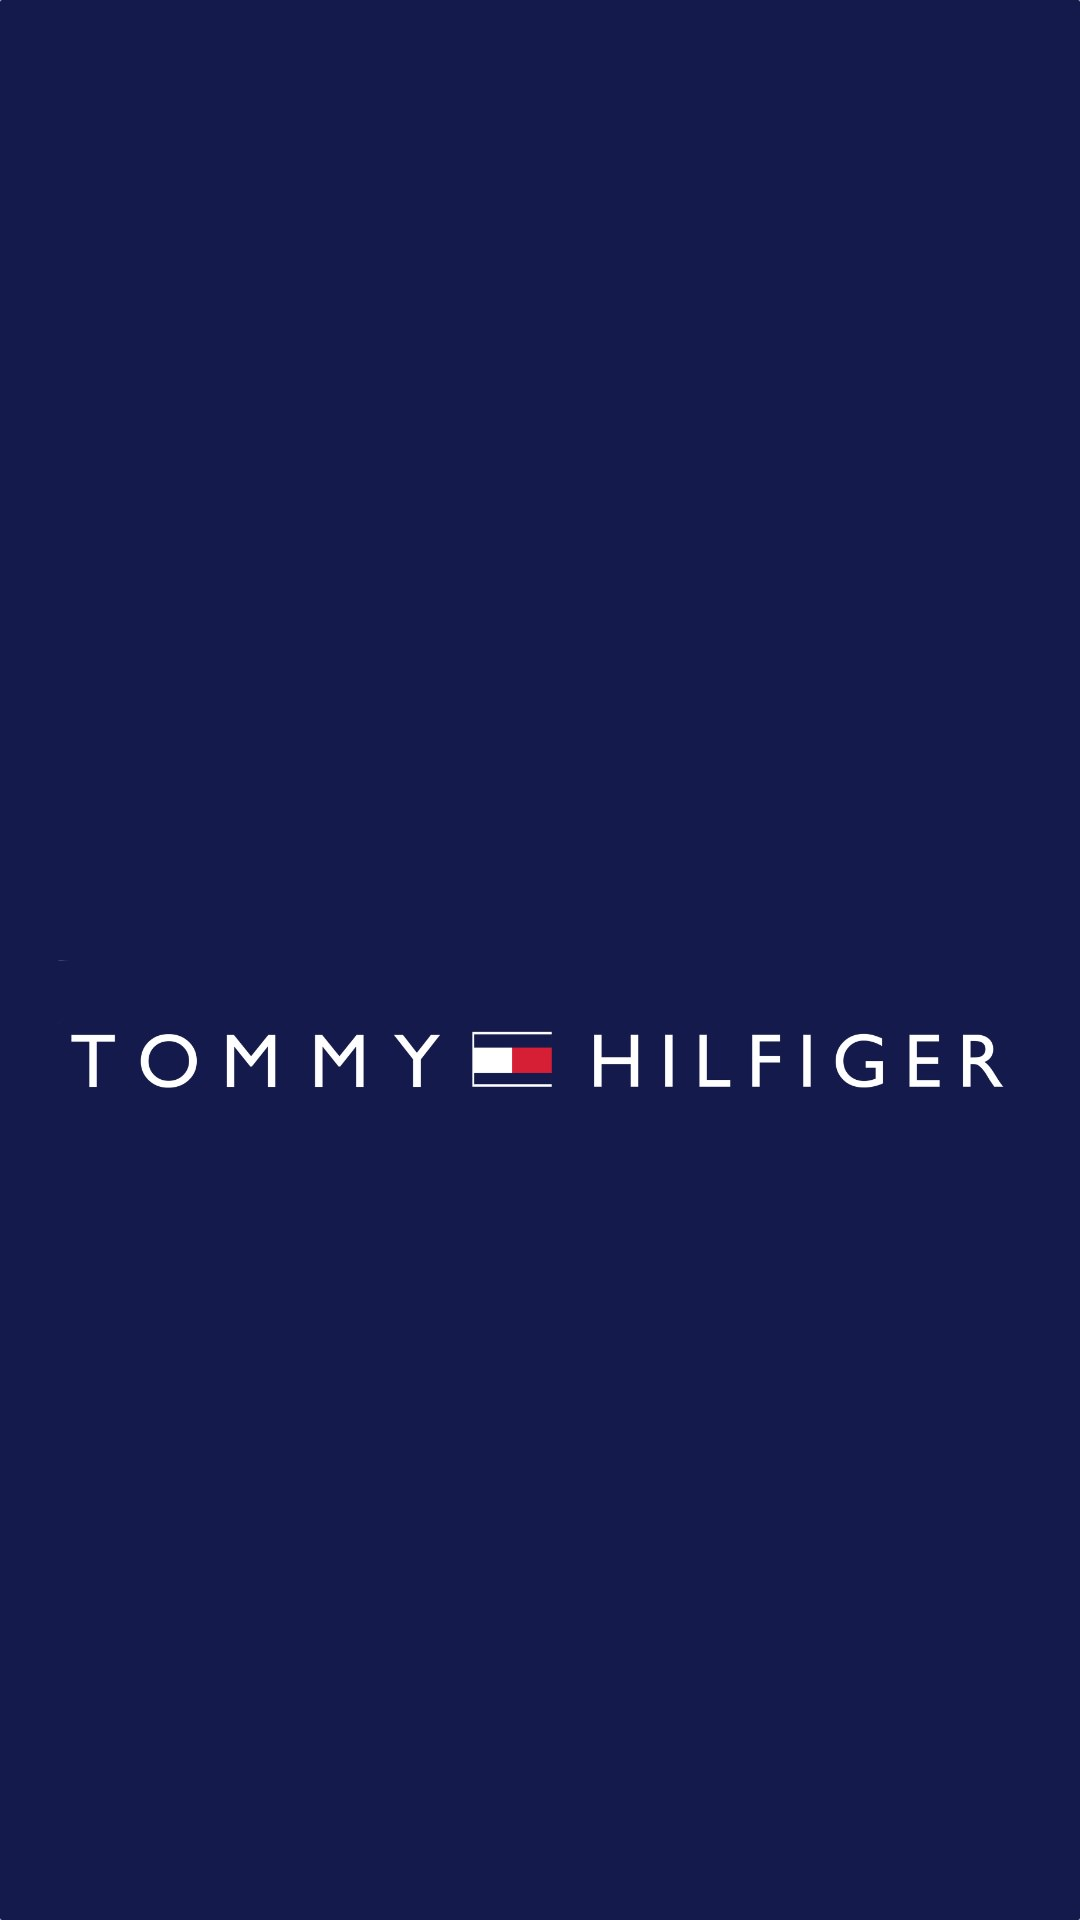 tommyhilfiger04 - TOMMY HILFIGER/トミー・ヒルフィガーの高画質スマホ壁紙20枚 [iPhone&Androidに対応]